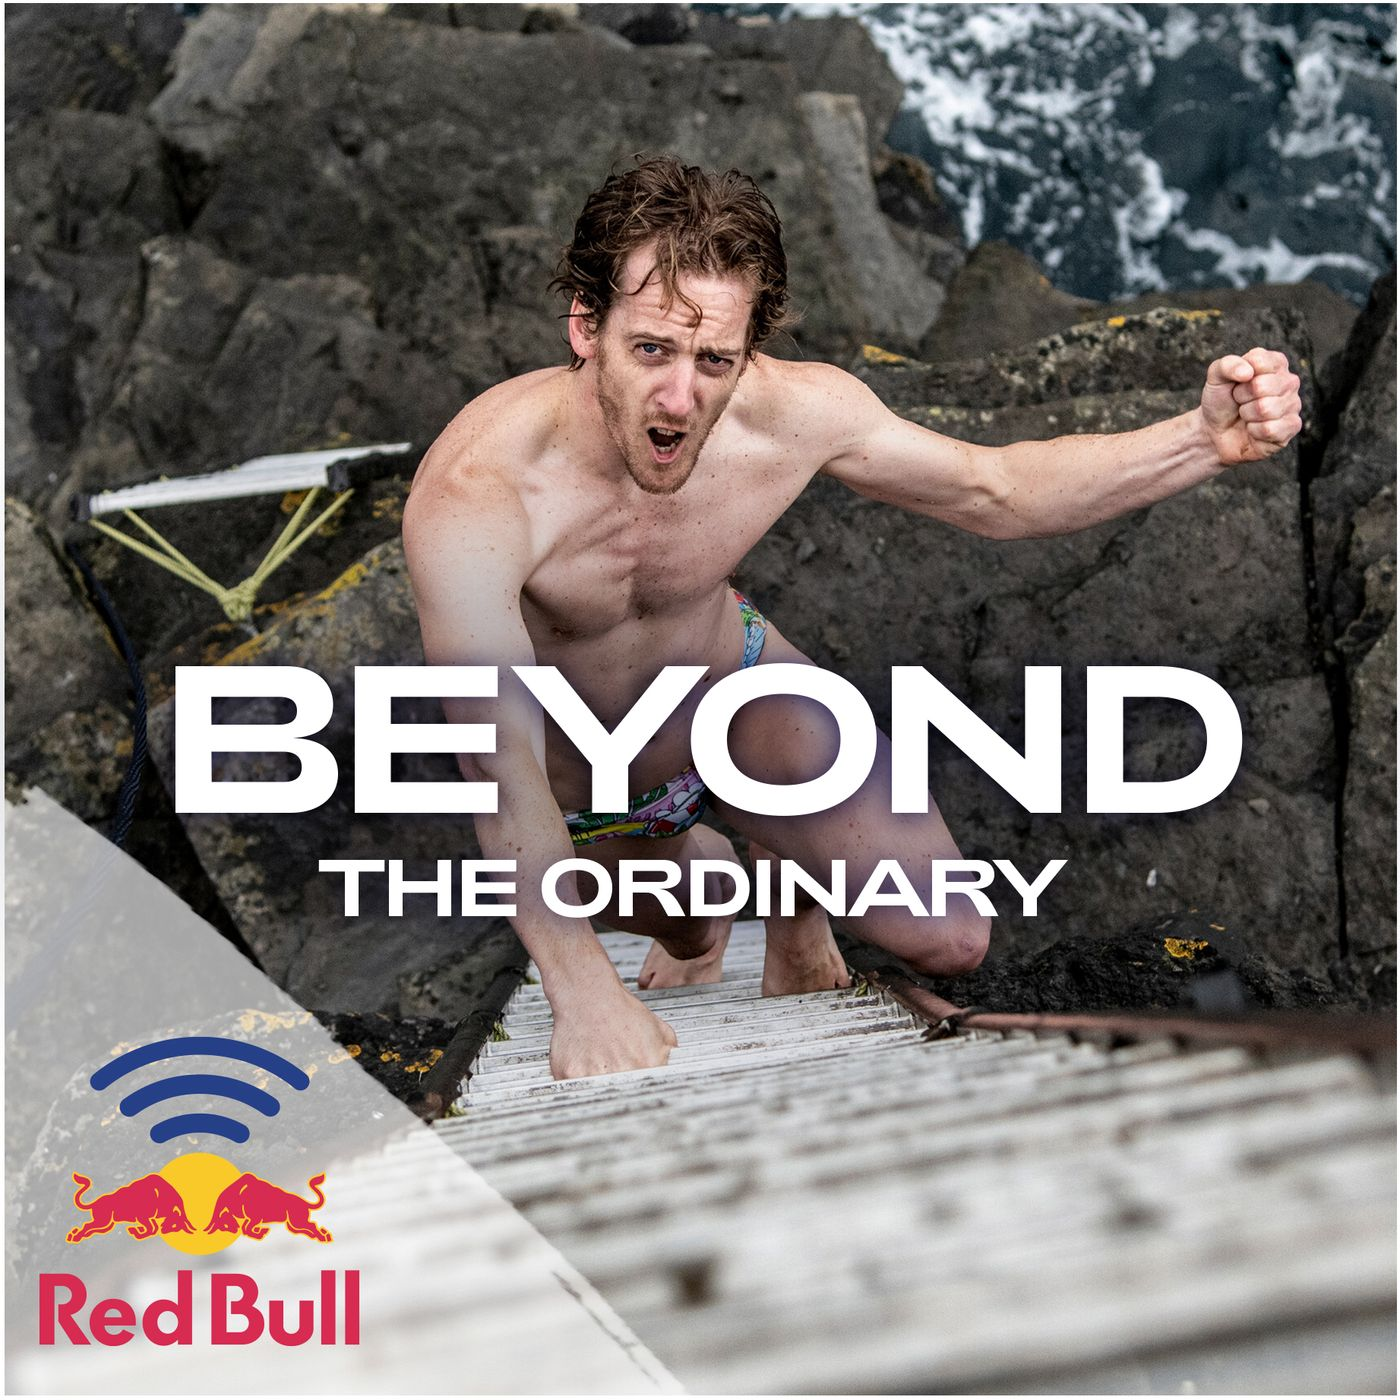 Hitting water at 85kph: the physicality of cliff diving